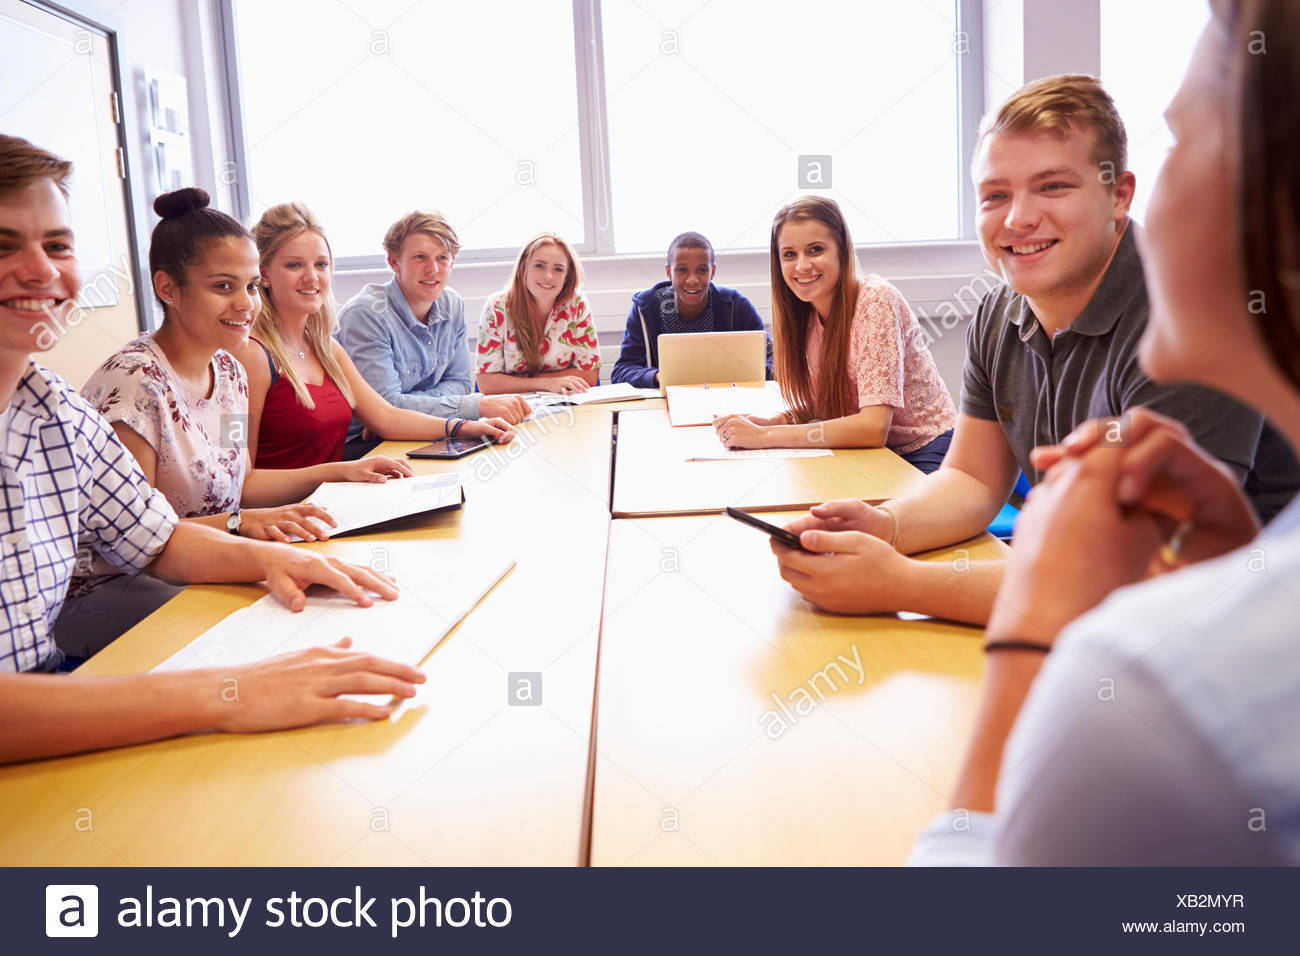 Group Discussion Table Student Stock Photos & Group ...